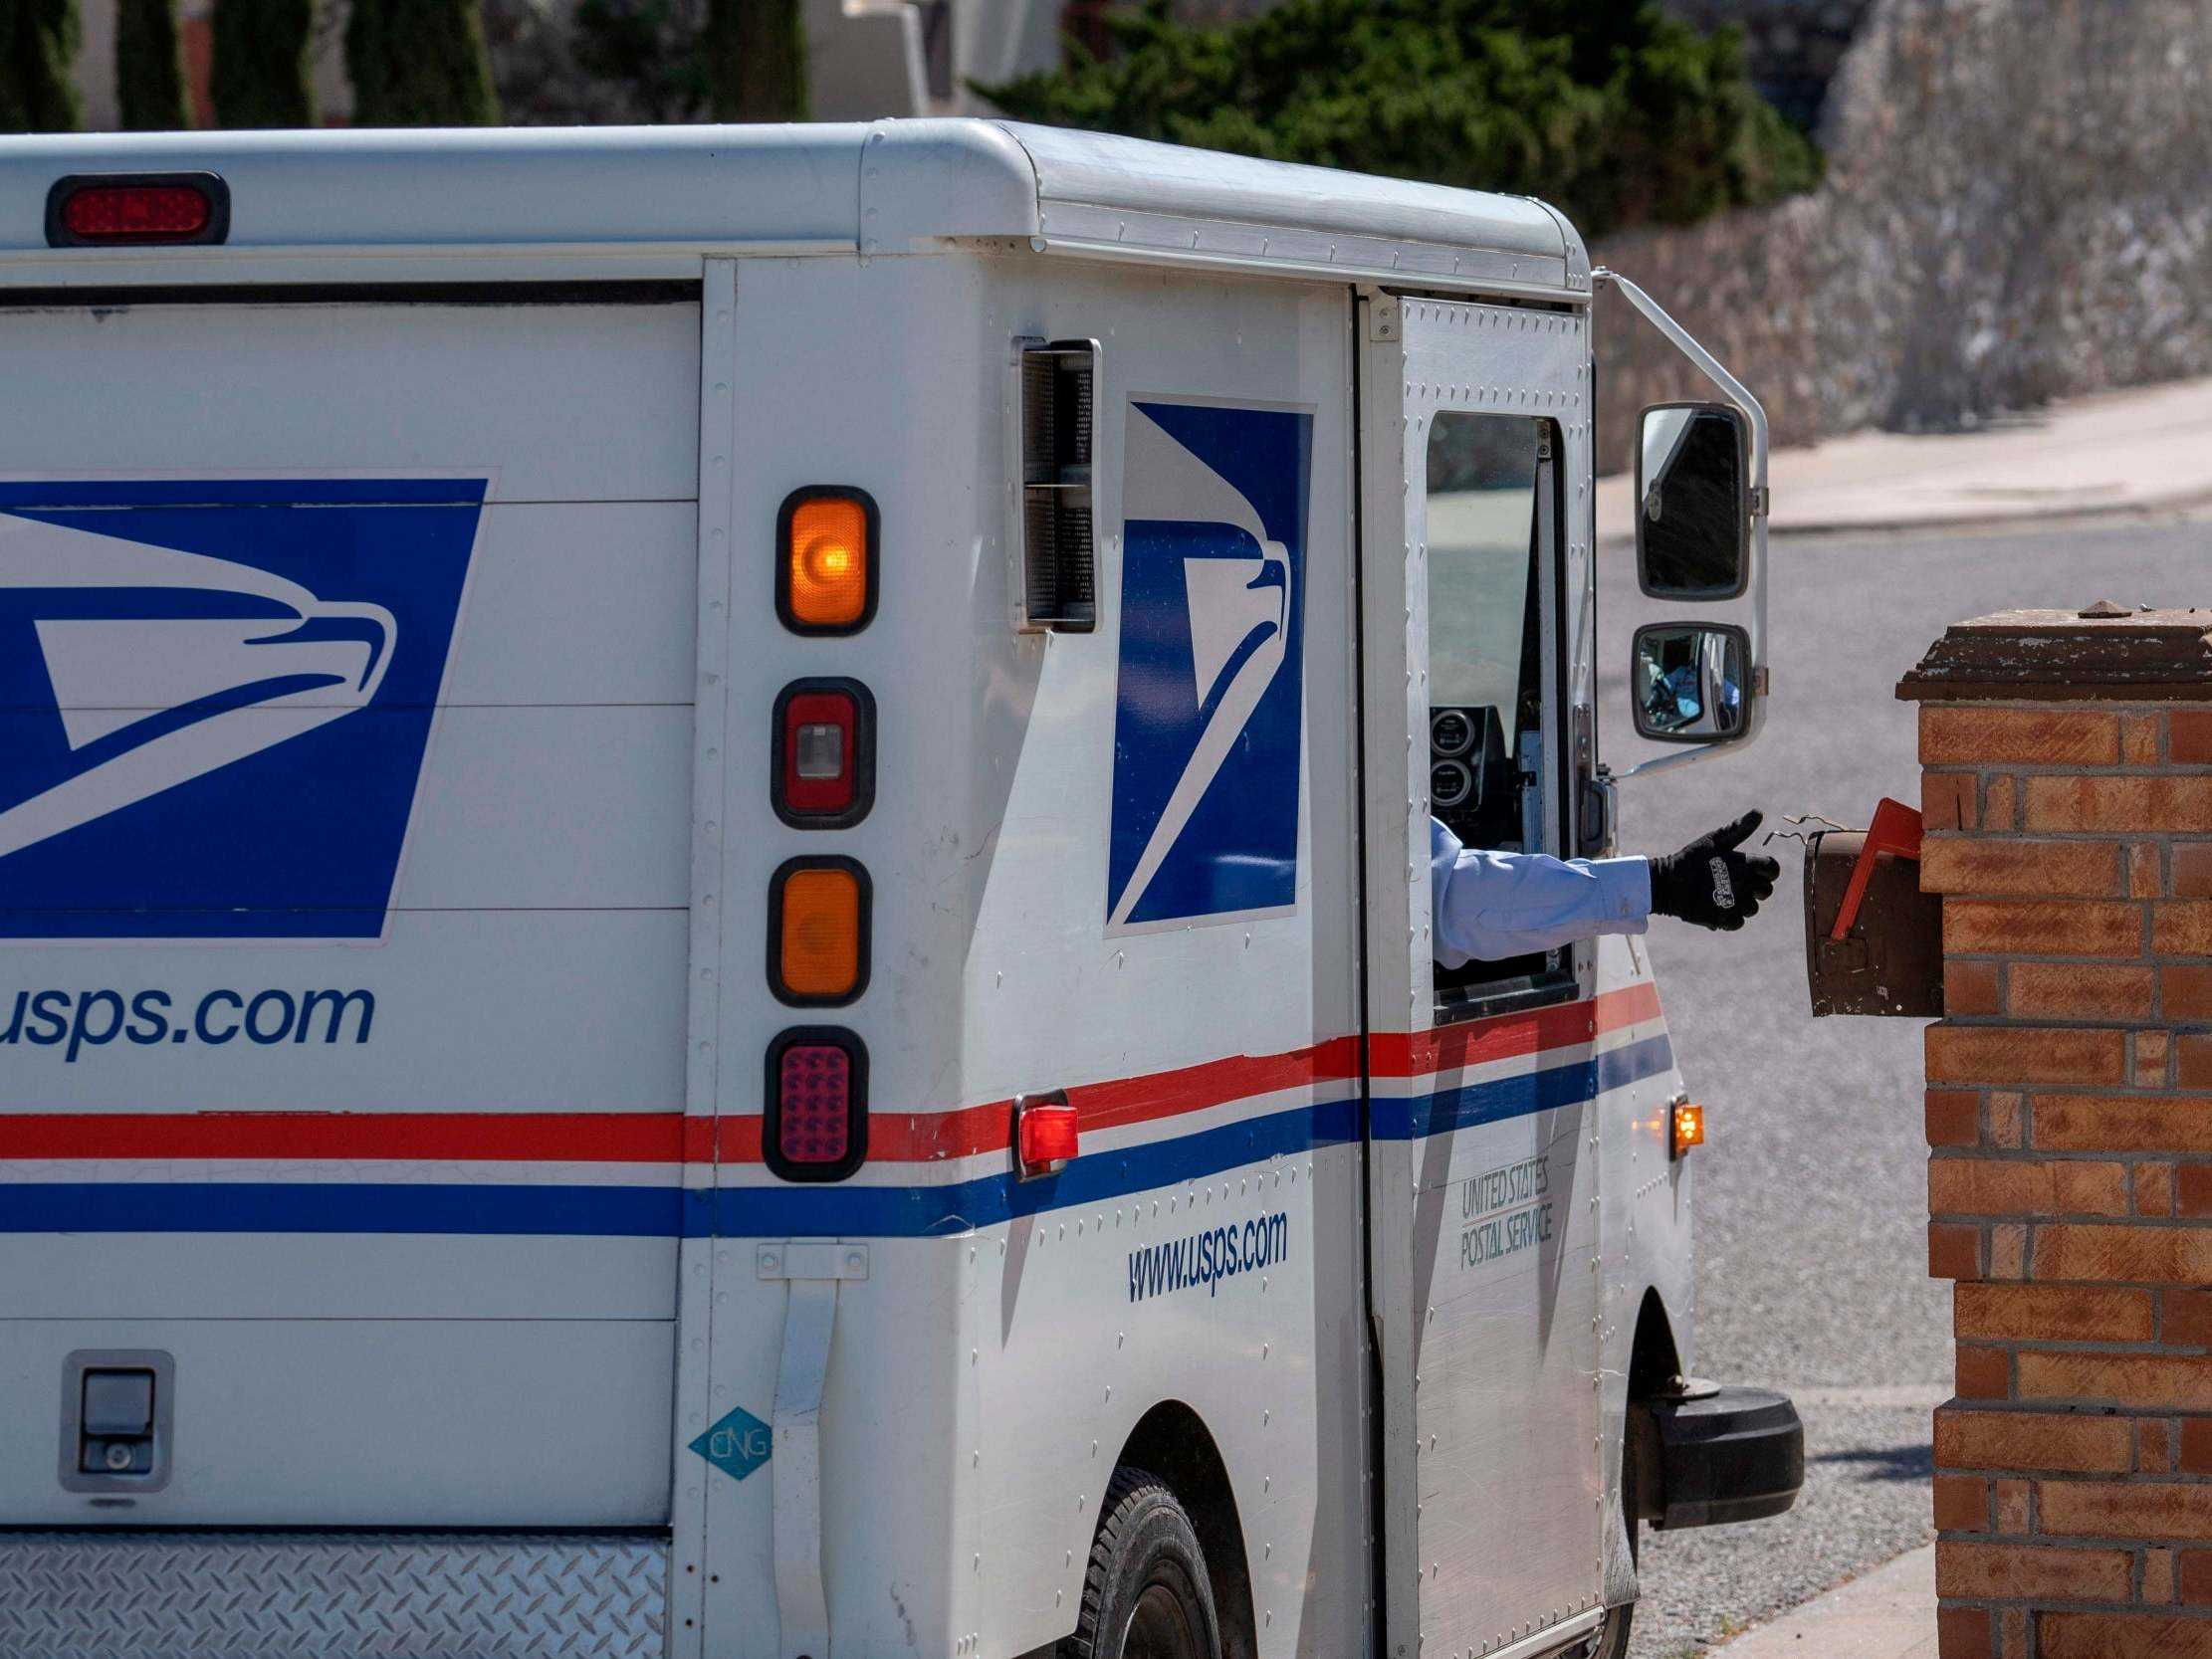 Postal worker accused of attempted mail-in voter fraud in favour of Republicans